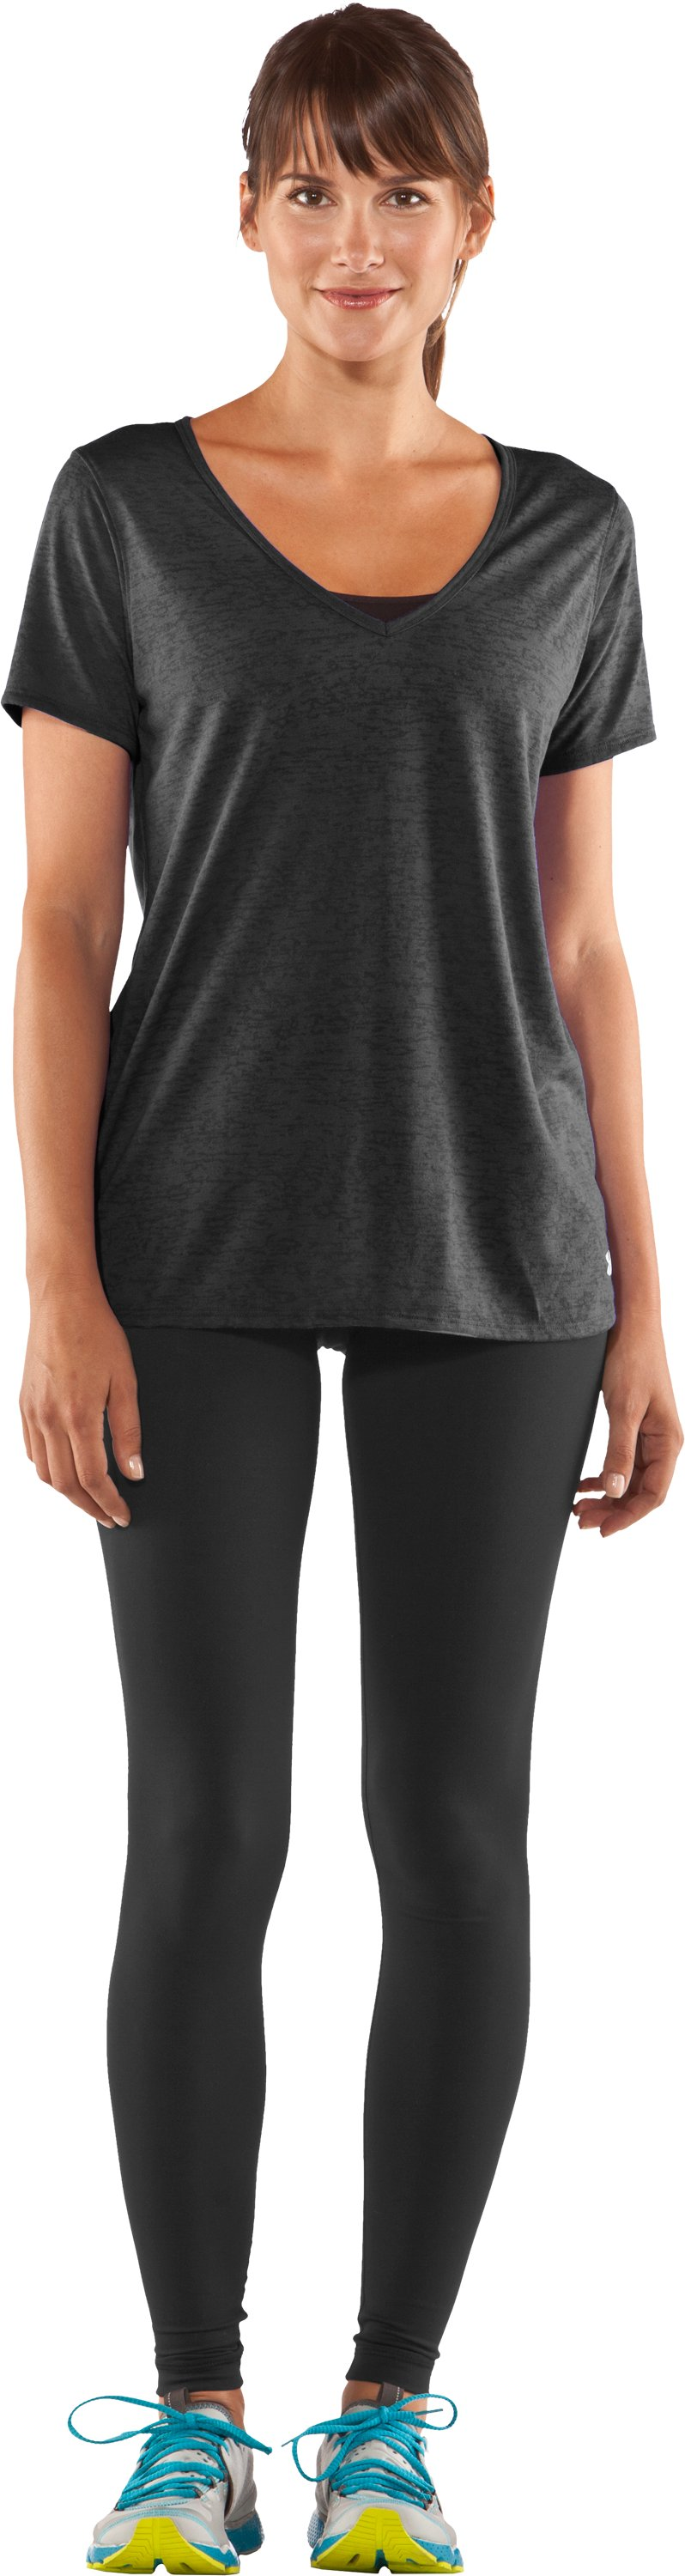 Women's Achieve Burnout T-Shirt, Black